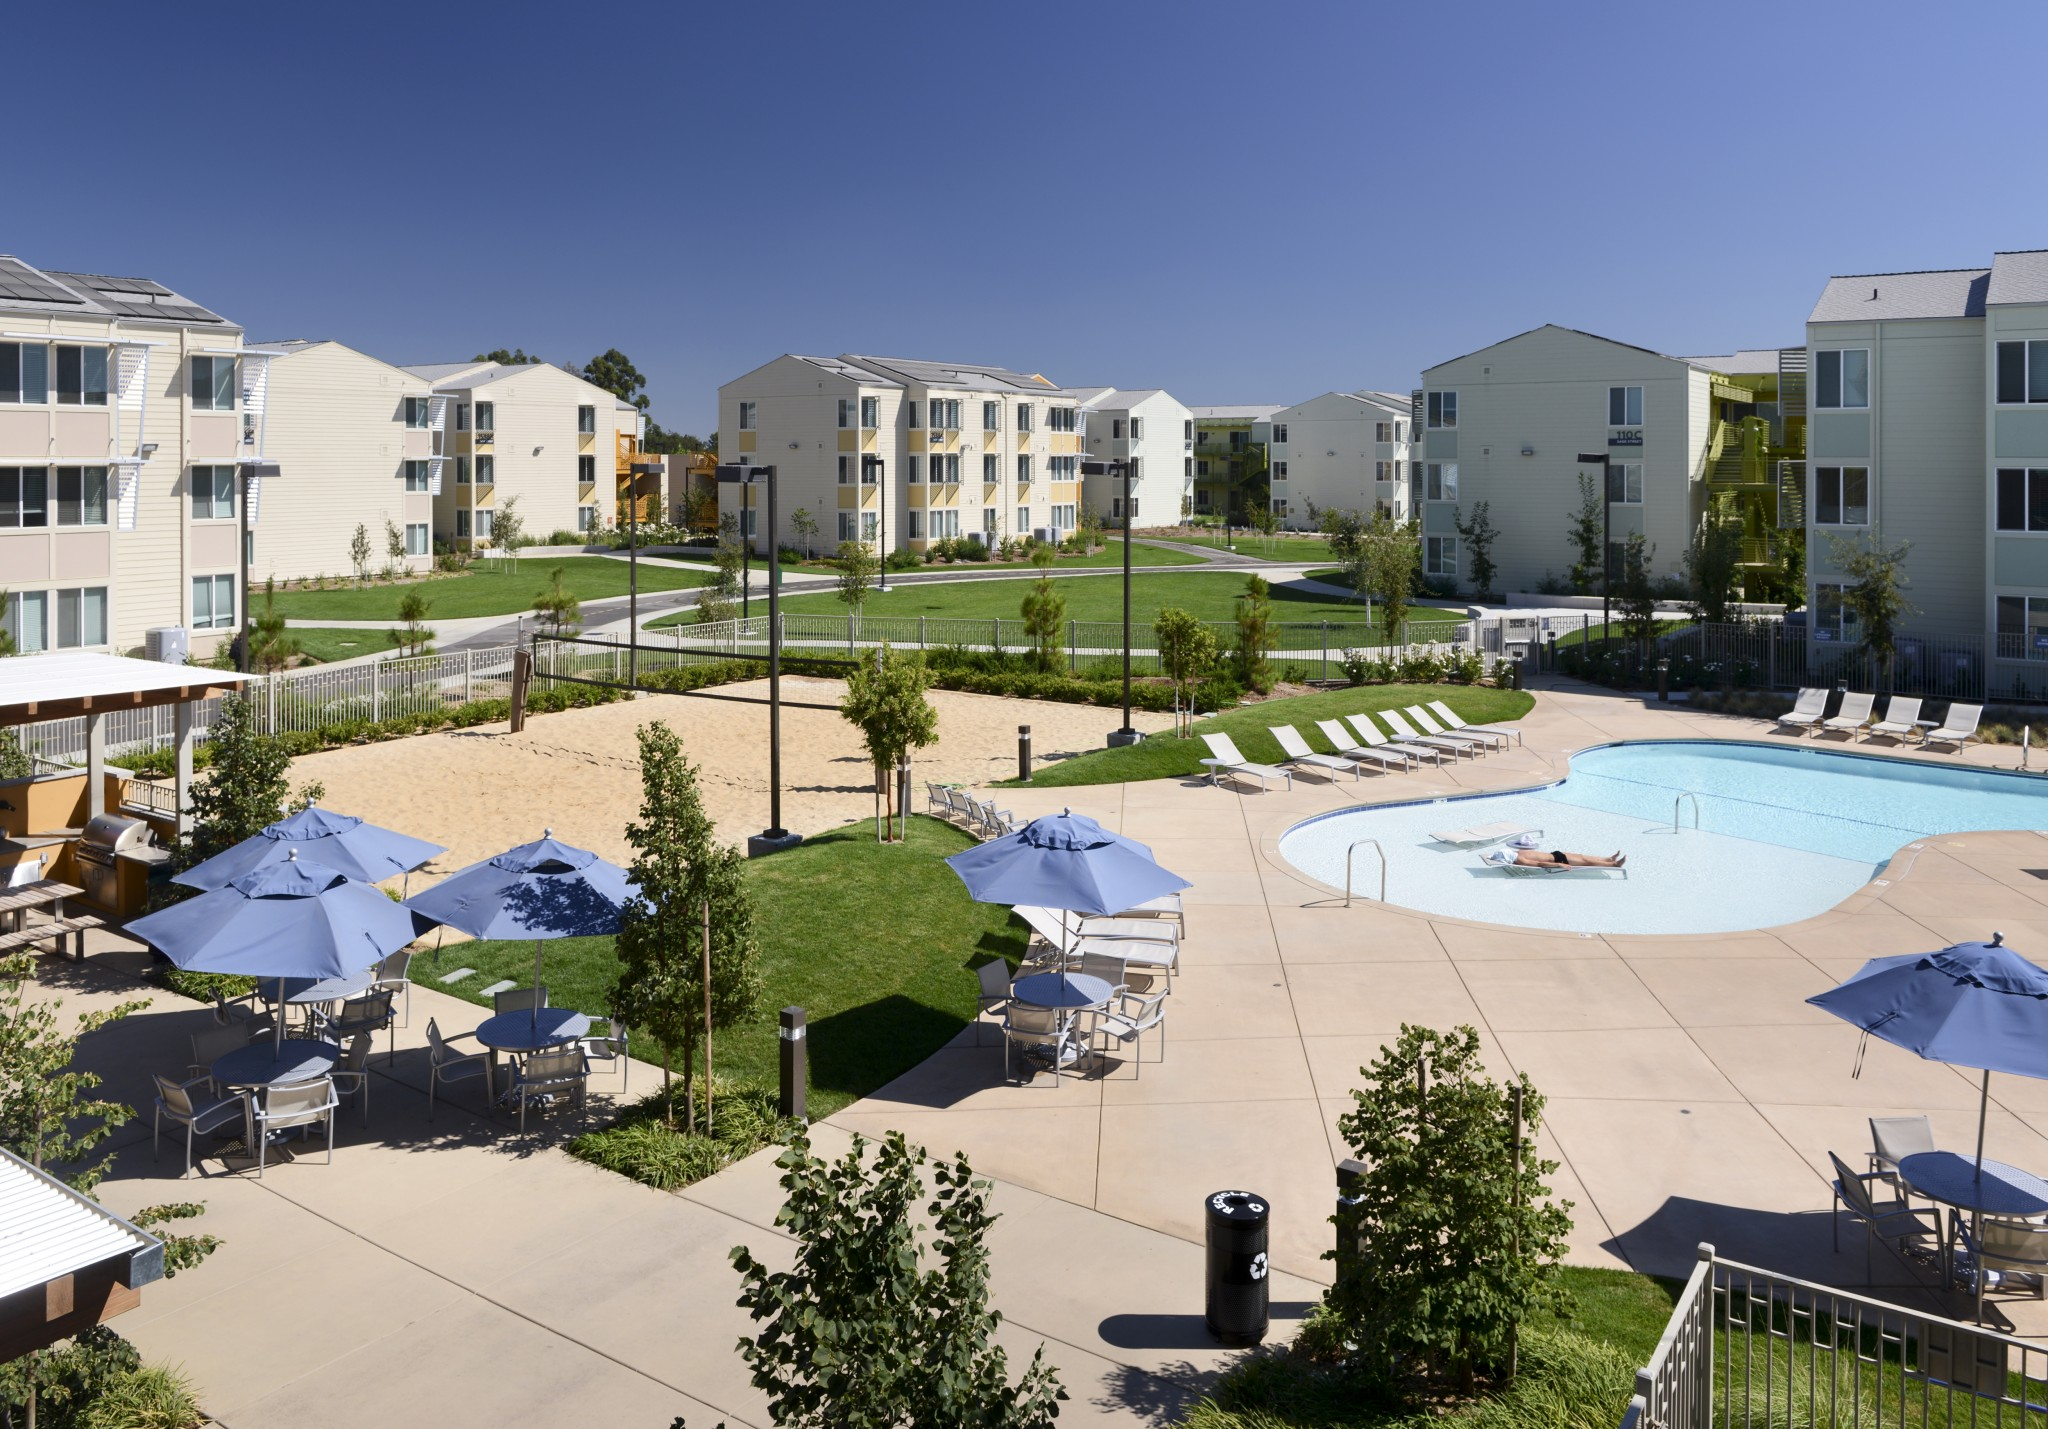 View of the pool, sand volleyball court, lounge chairs, and tables with umbrellas with apartment buildings in the background.